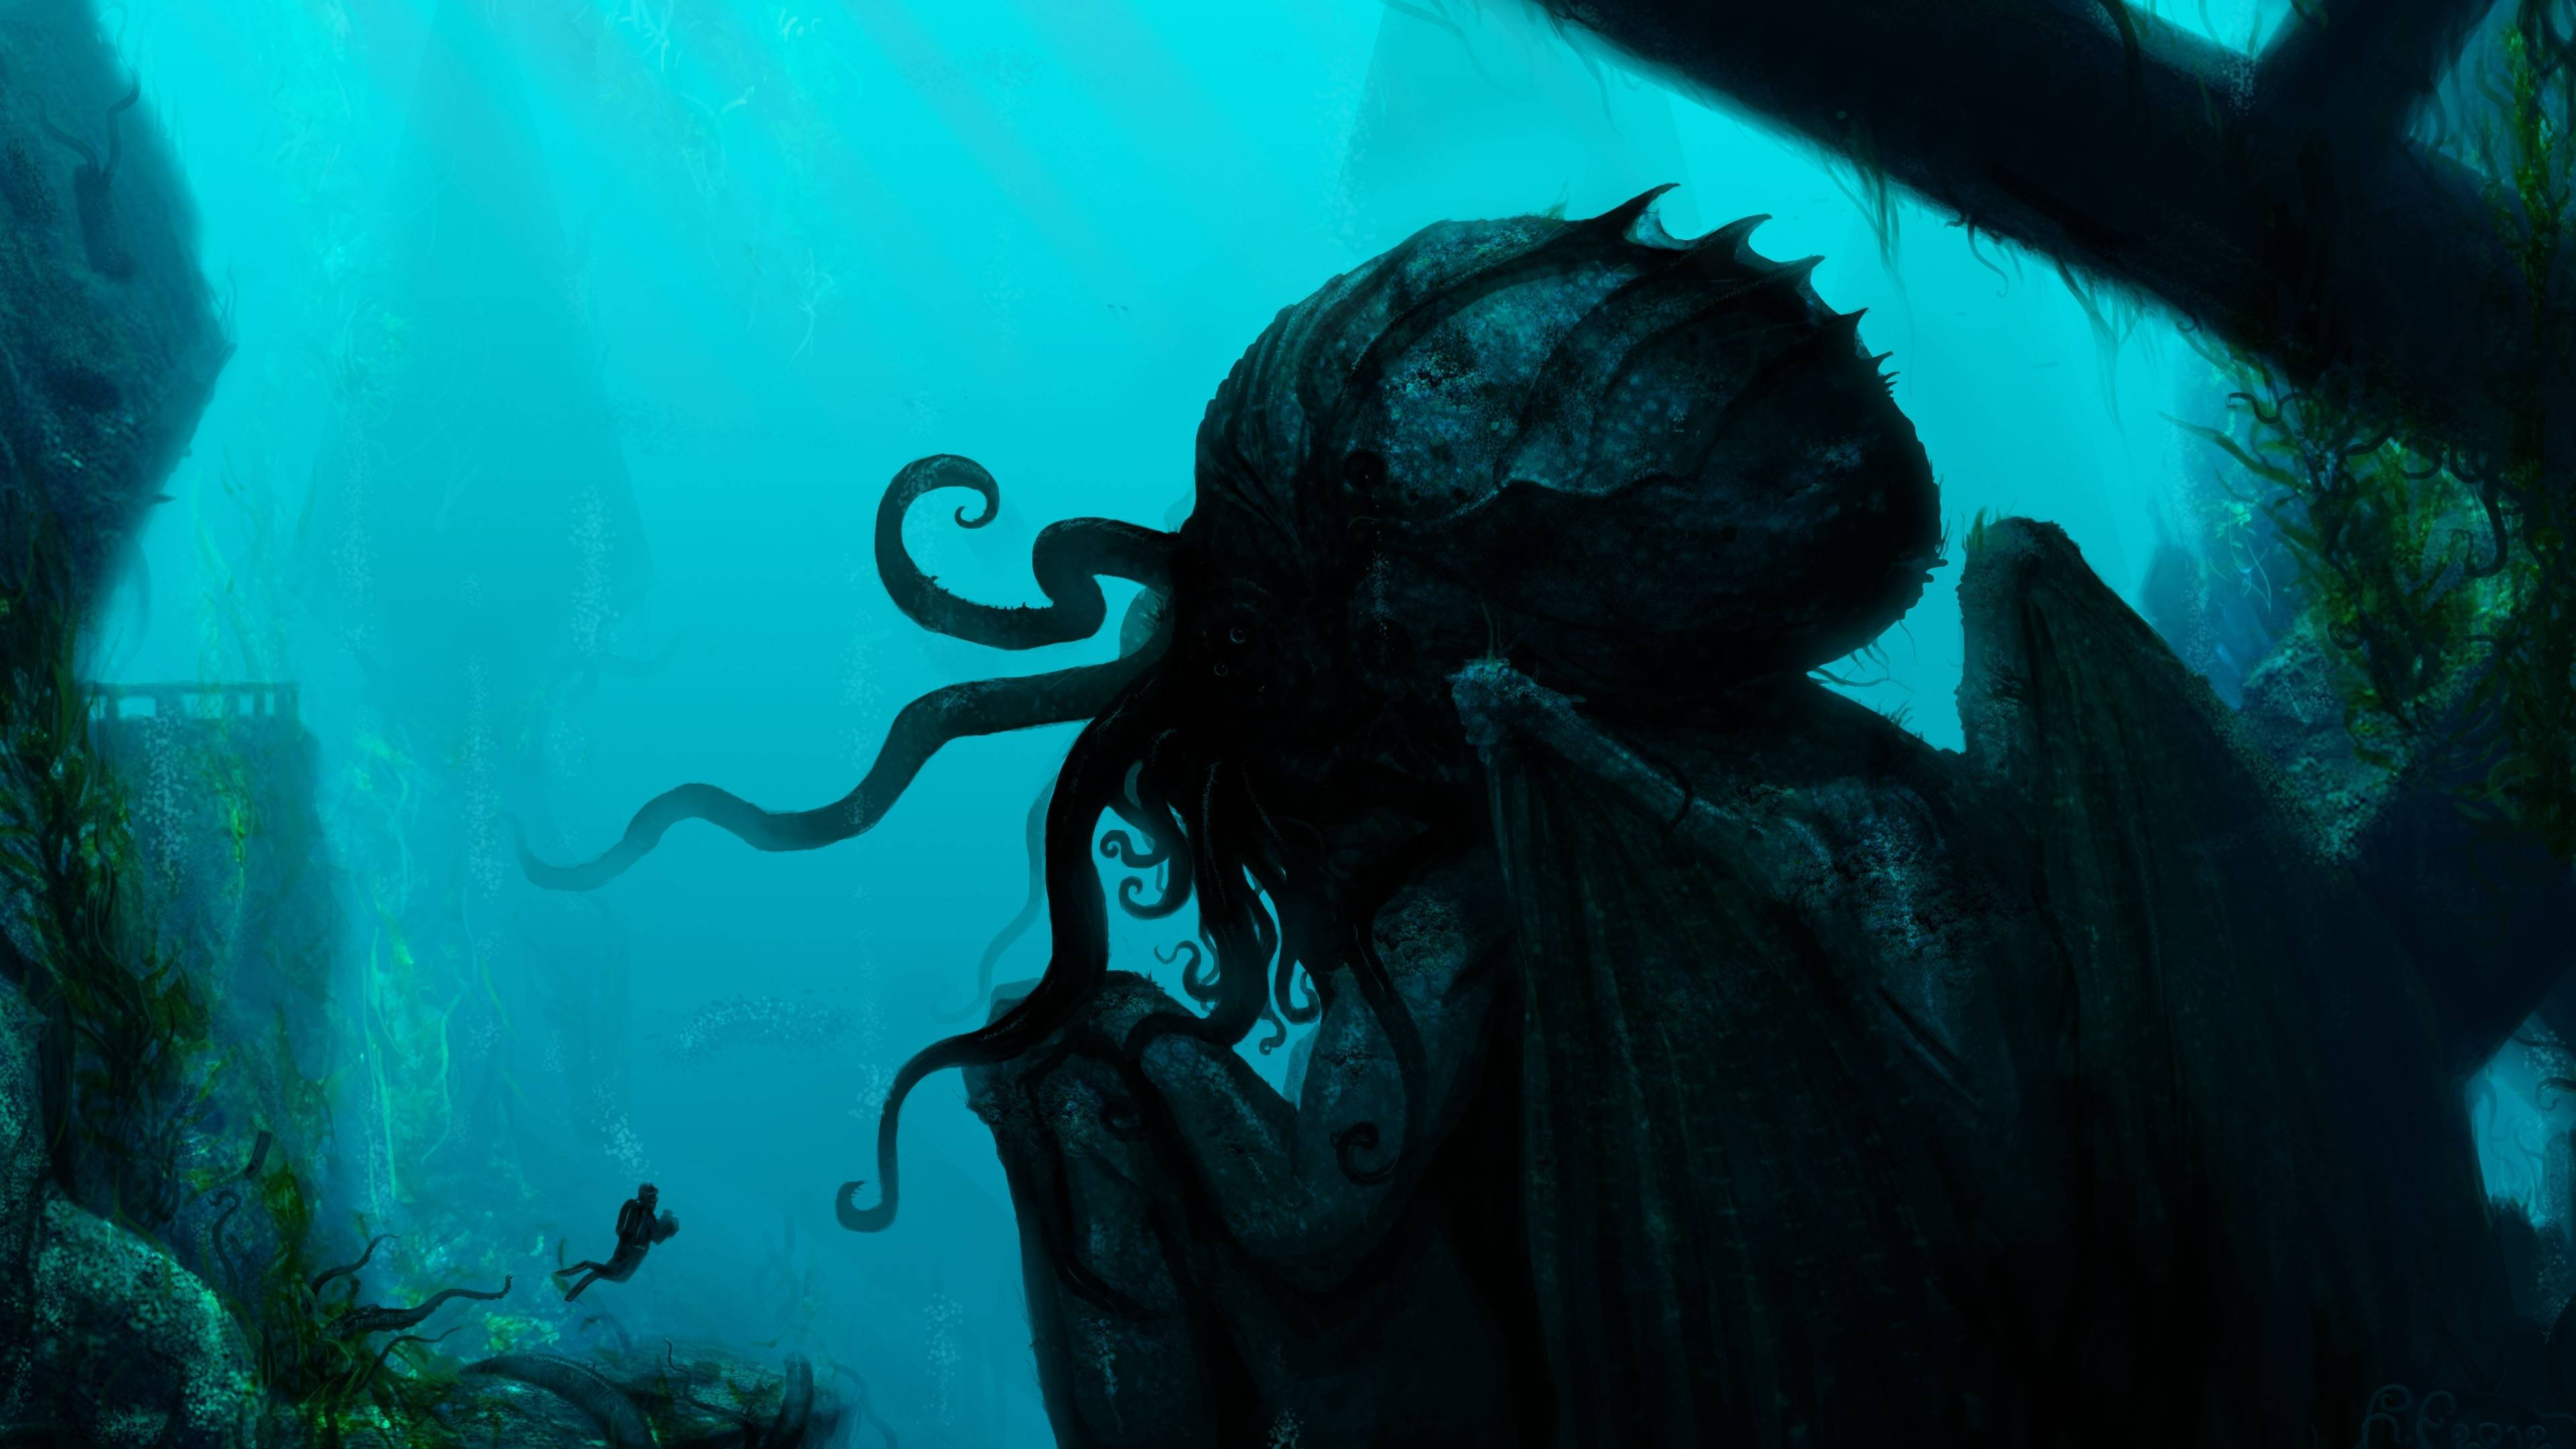 Cthulhu Computer Wallpapers, Desktop Backgrounds 3840x2160 Id: 327893